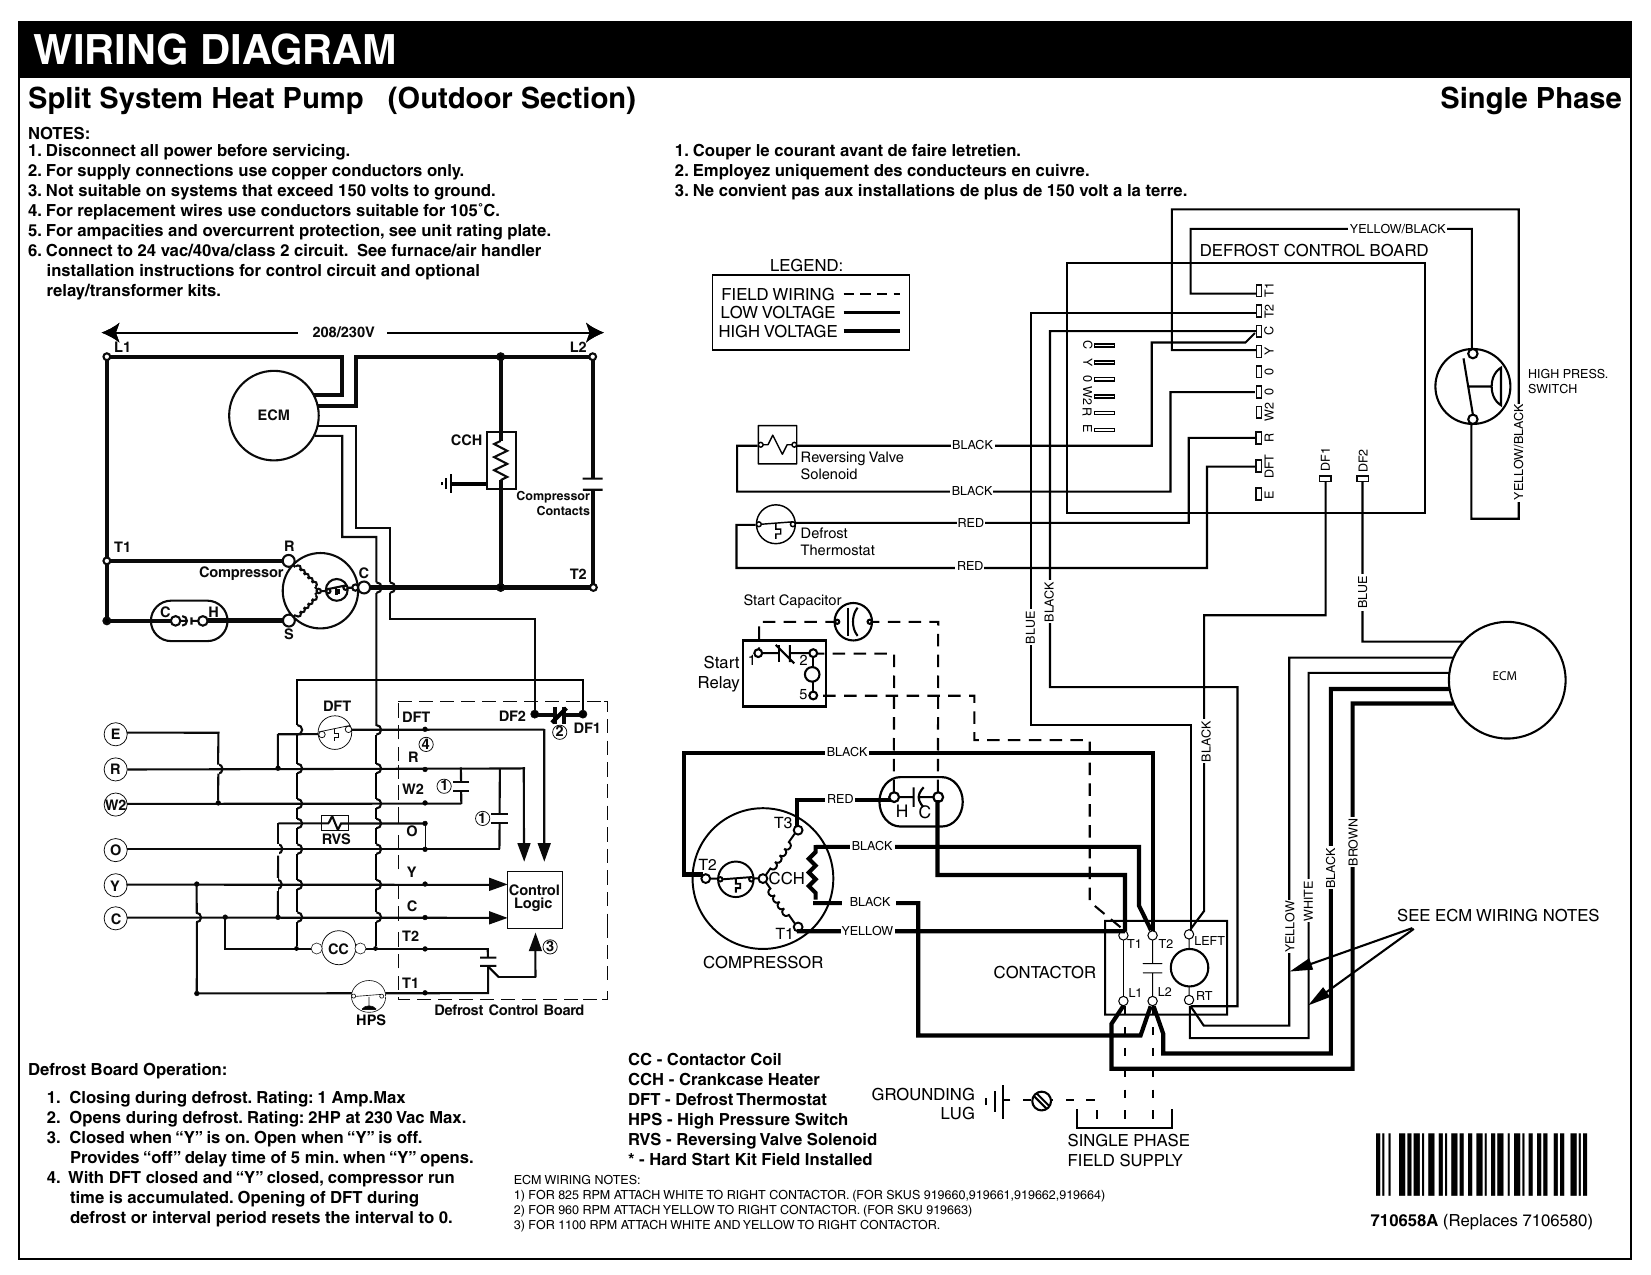 Westinghouse Jt4be Single Phase Wiring Diagram